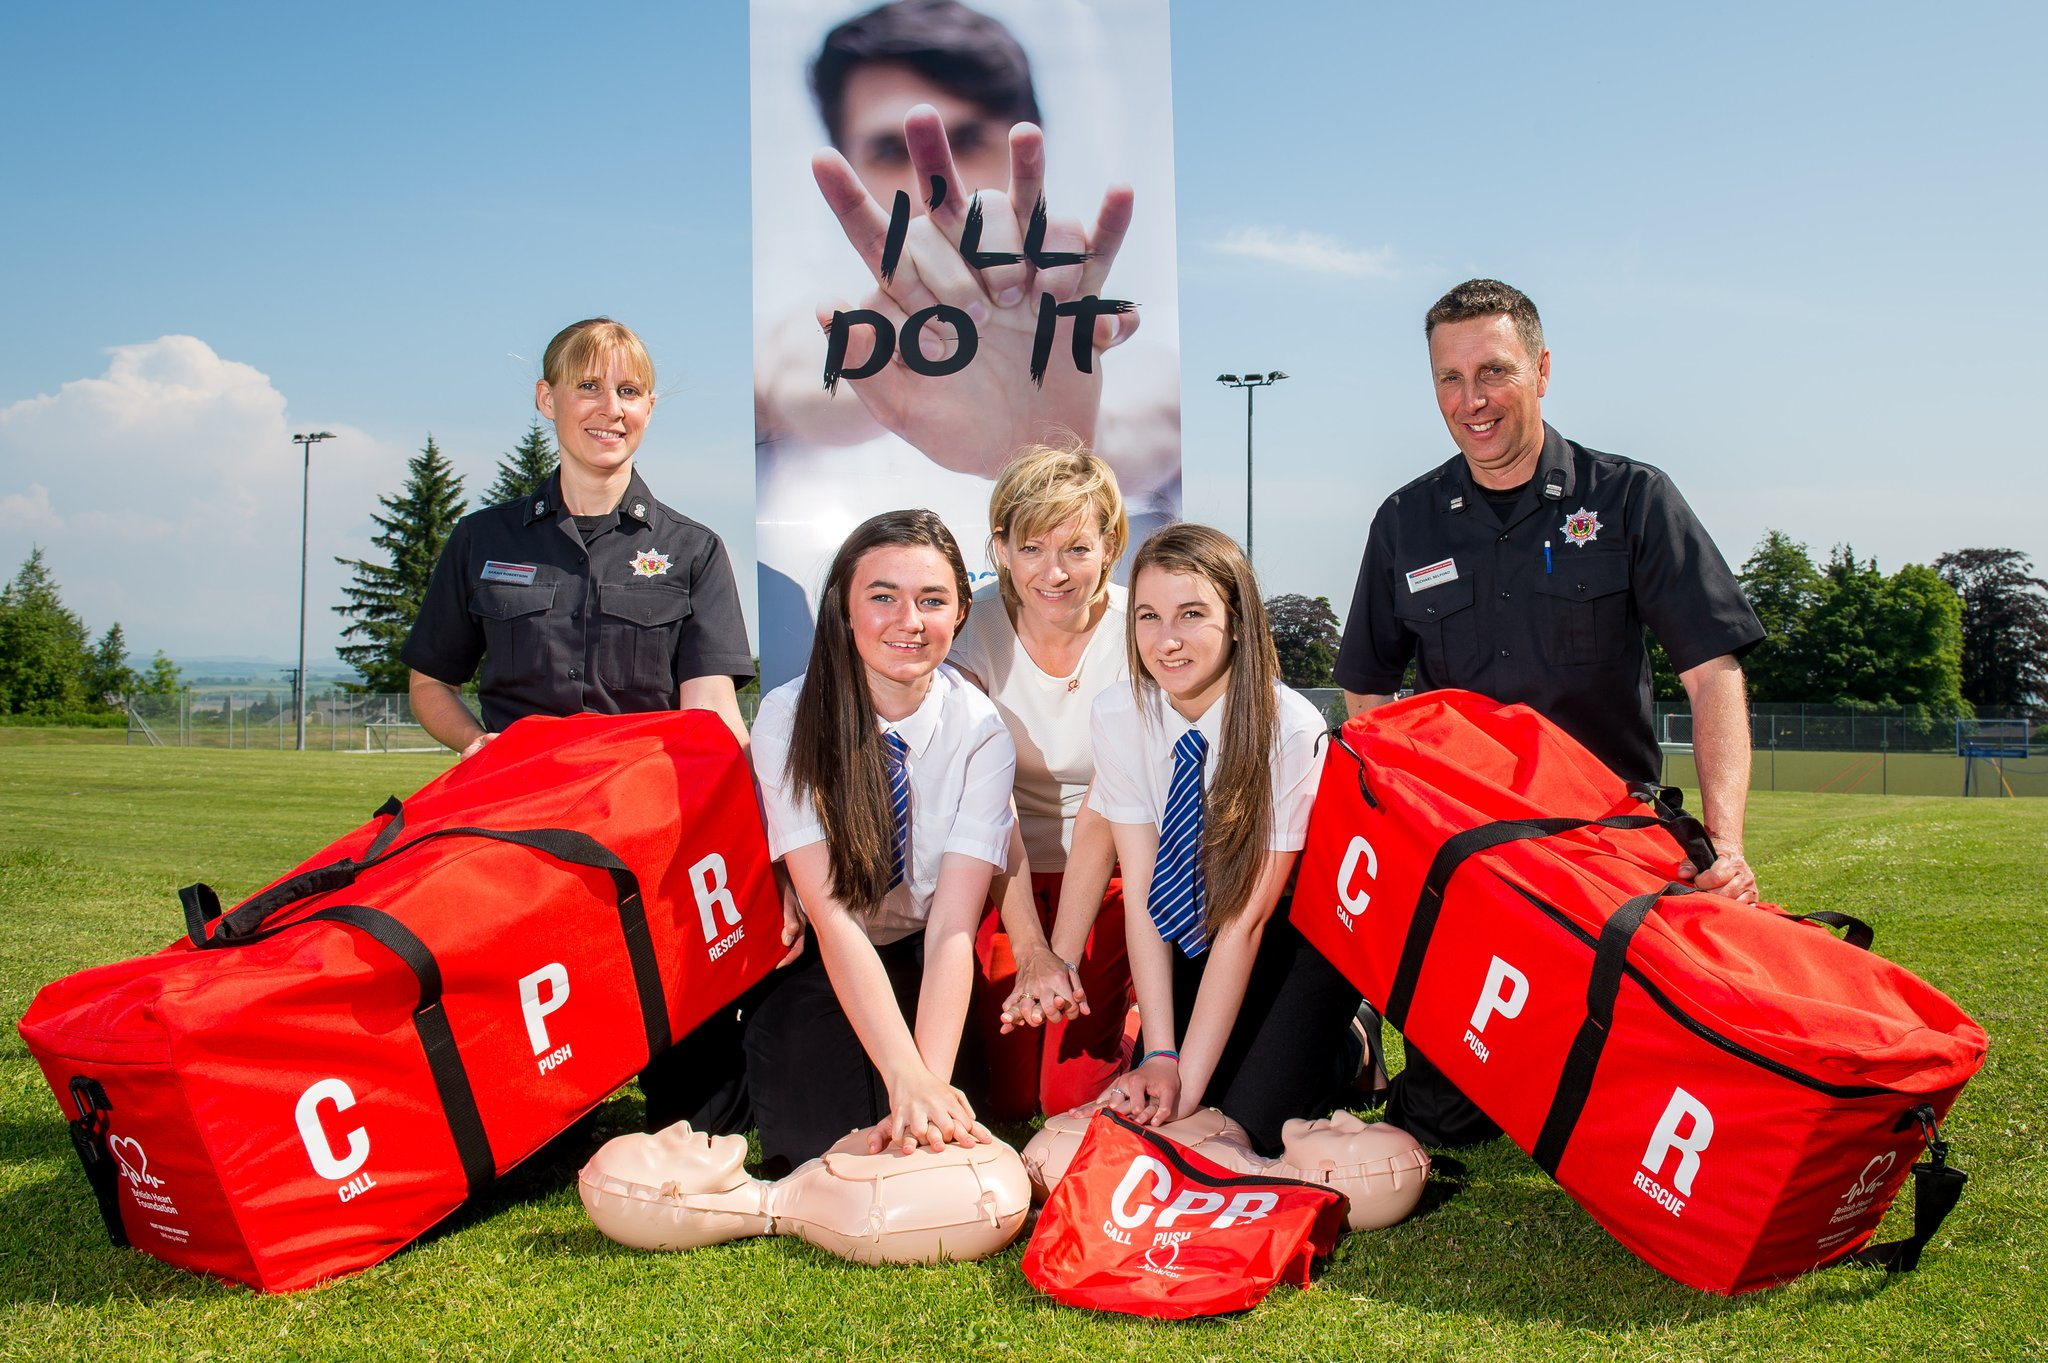 Over 500 pupils become life-savers in mass school CPR event